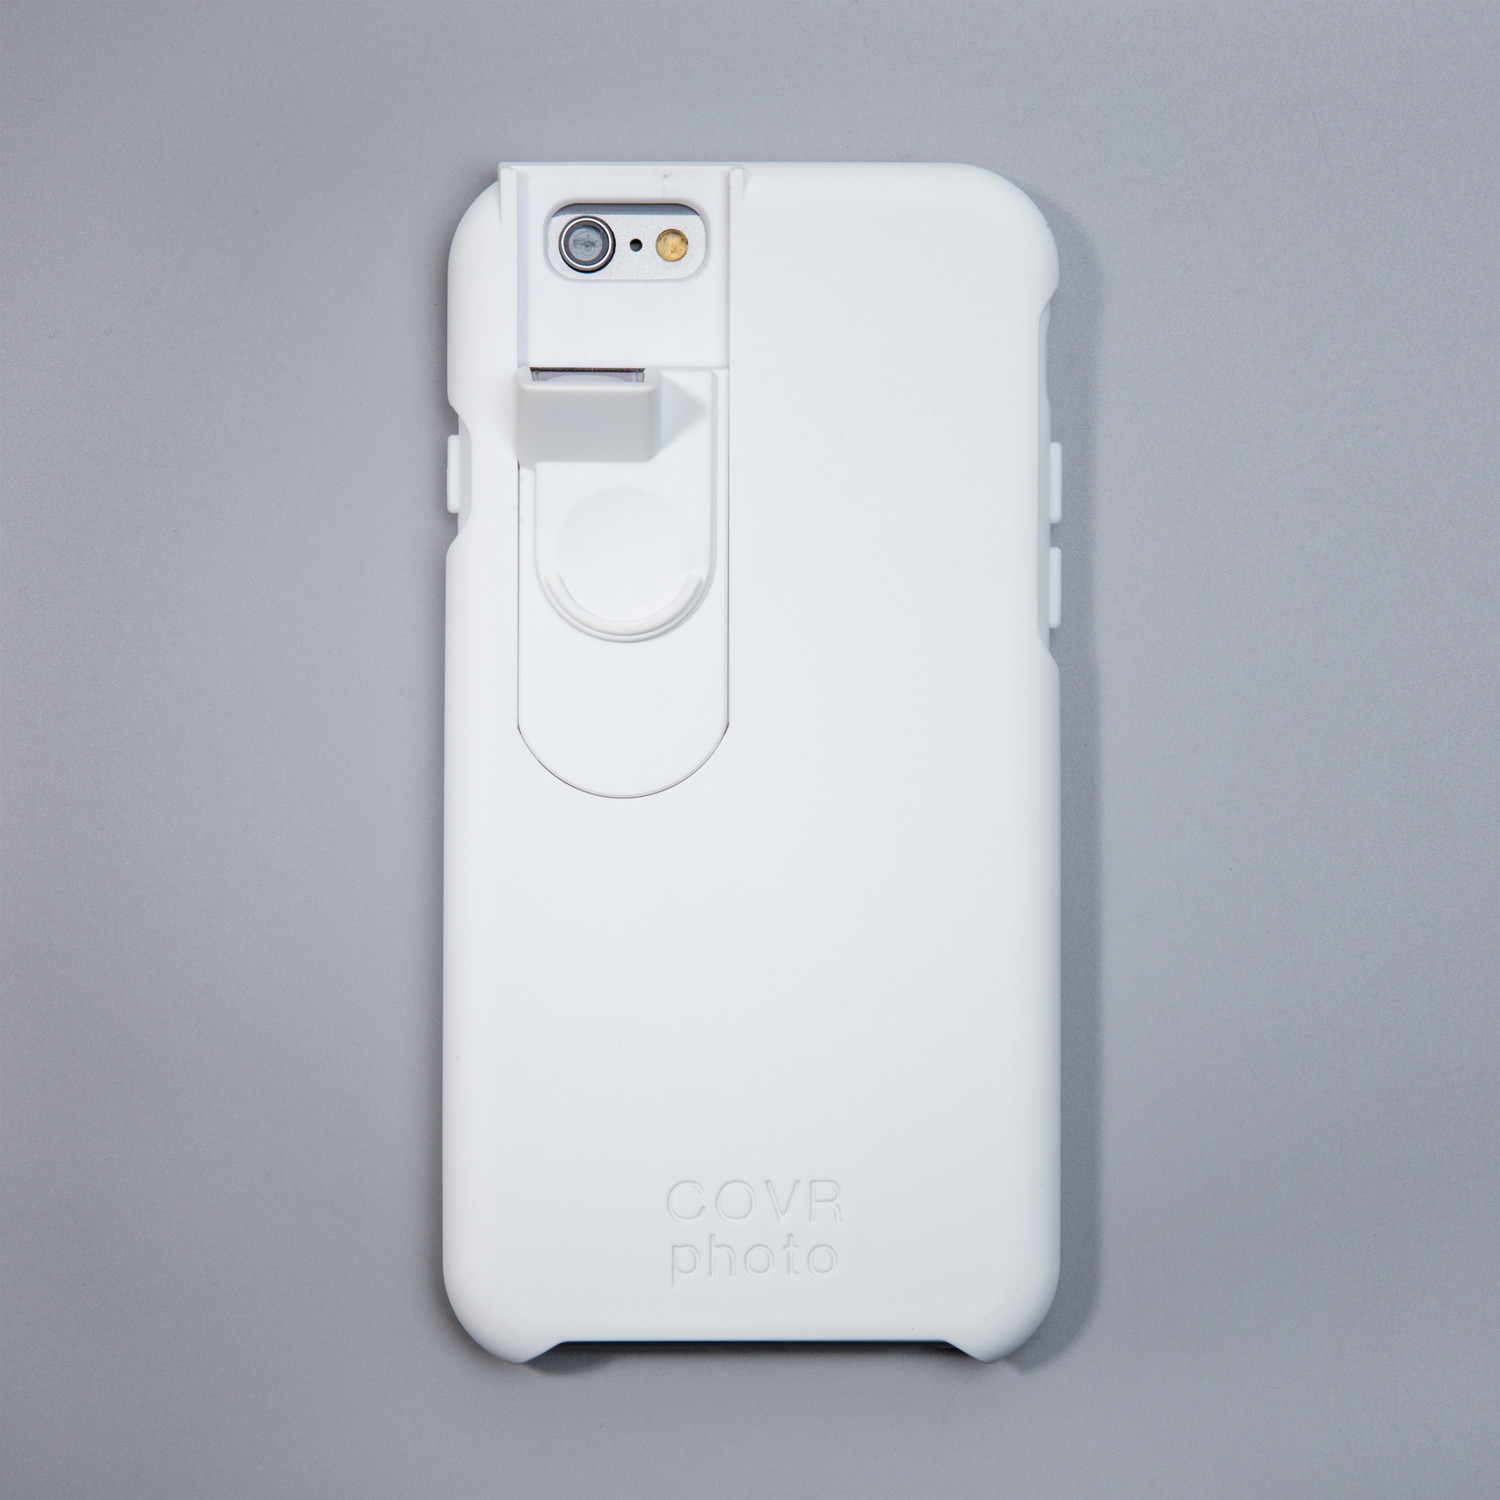 super popular 2328d 71915 COVR Photo iPhone Case // White (iPhone 6/6s) - COVR - Touch of Modern